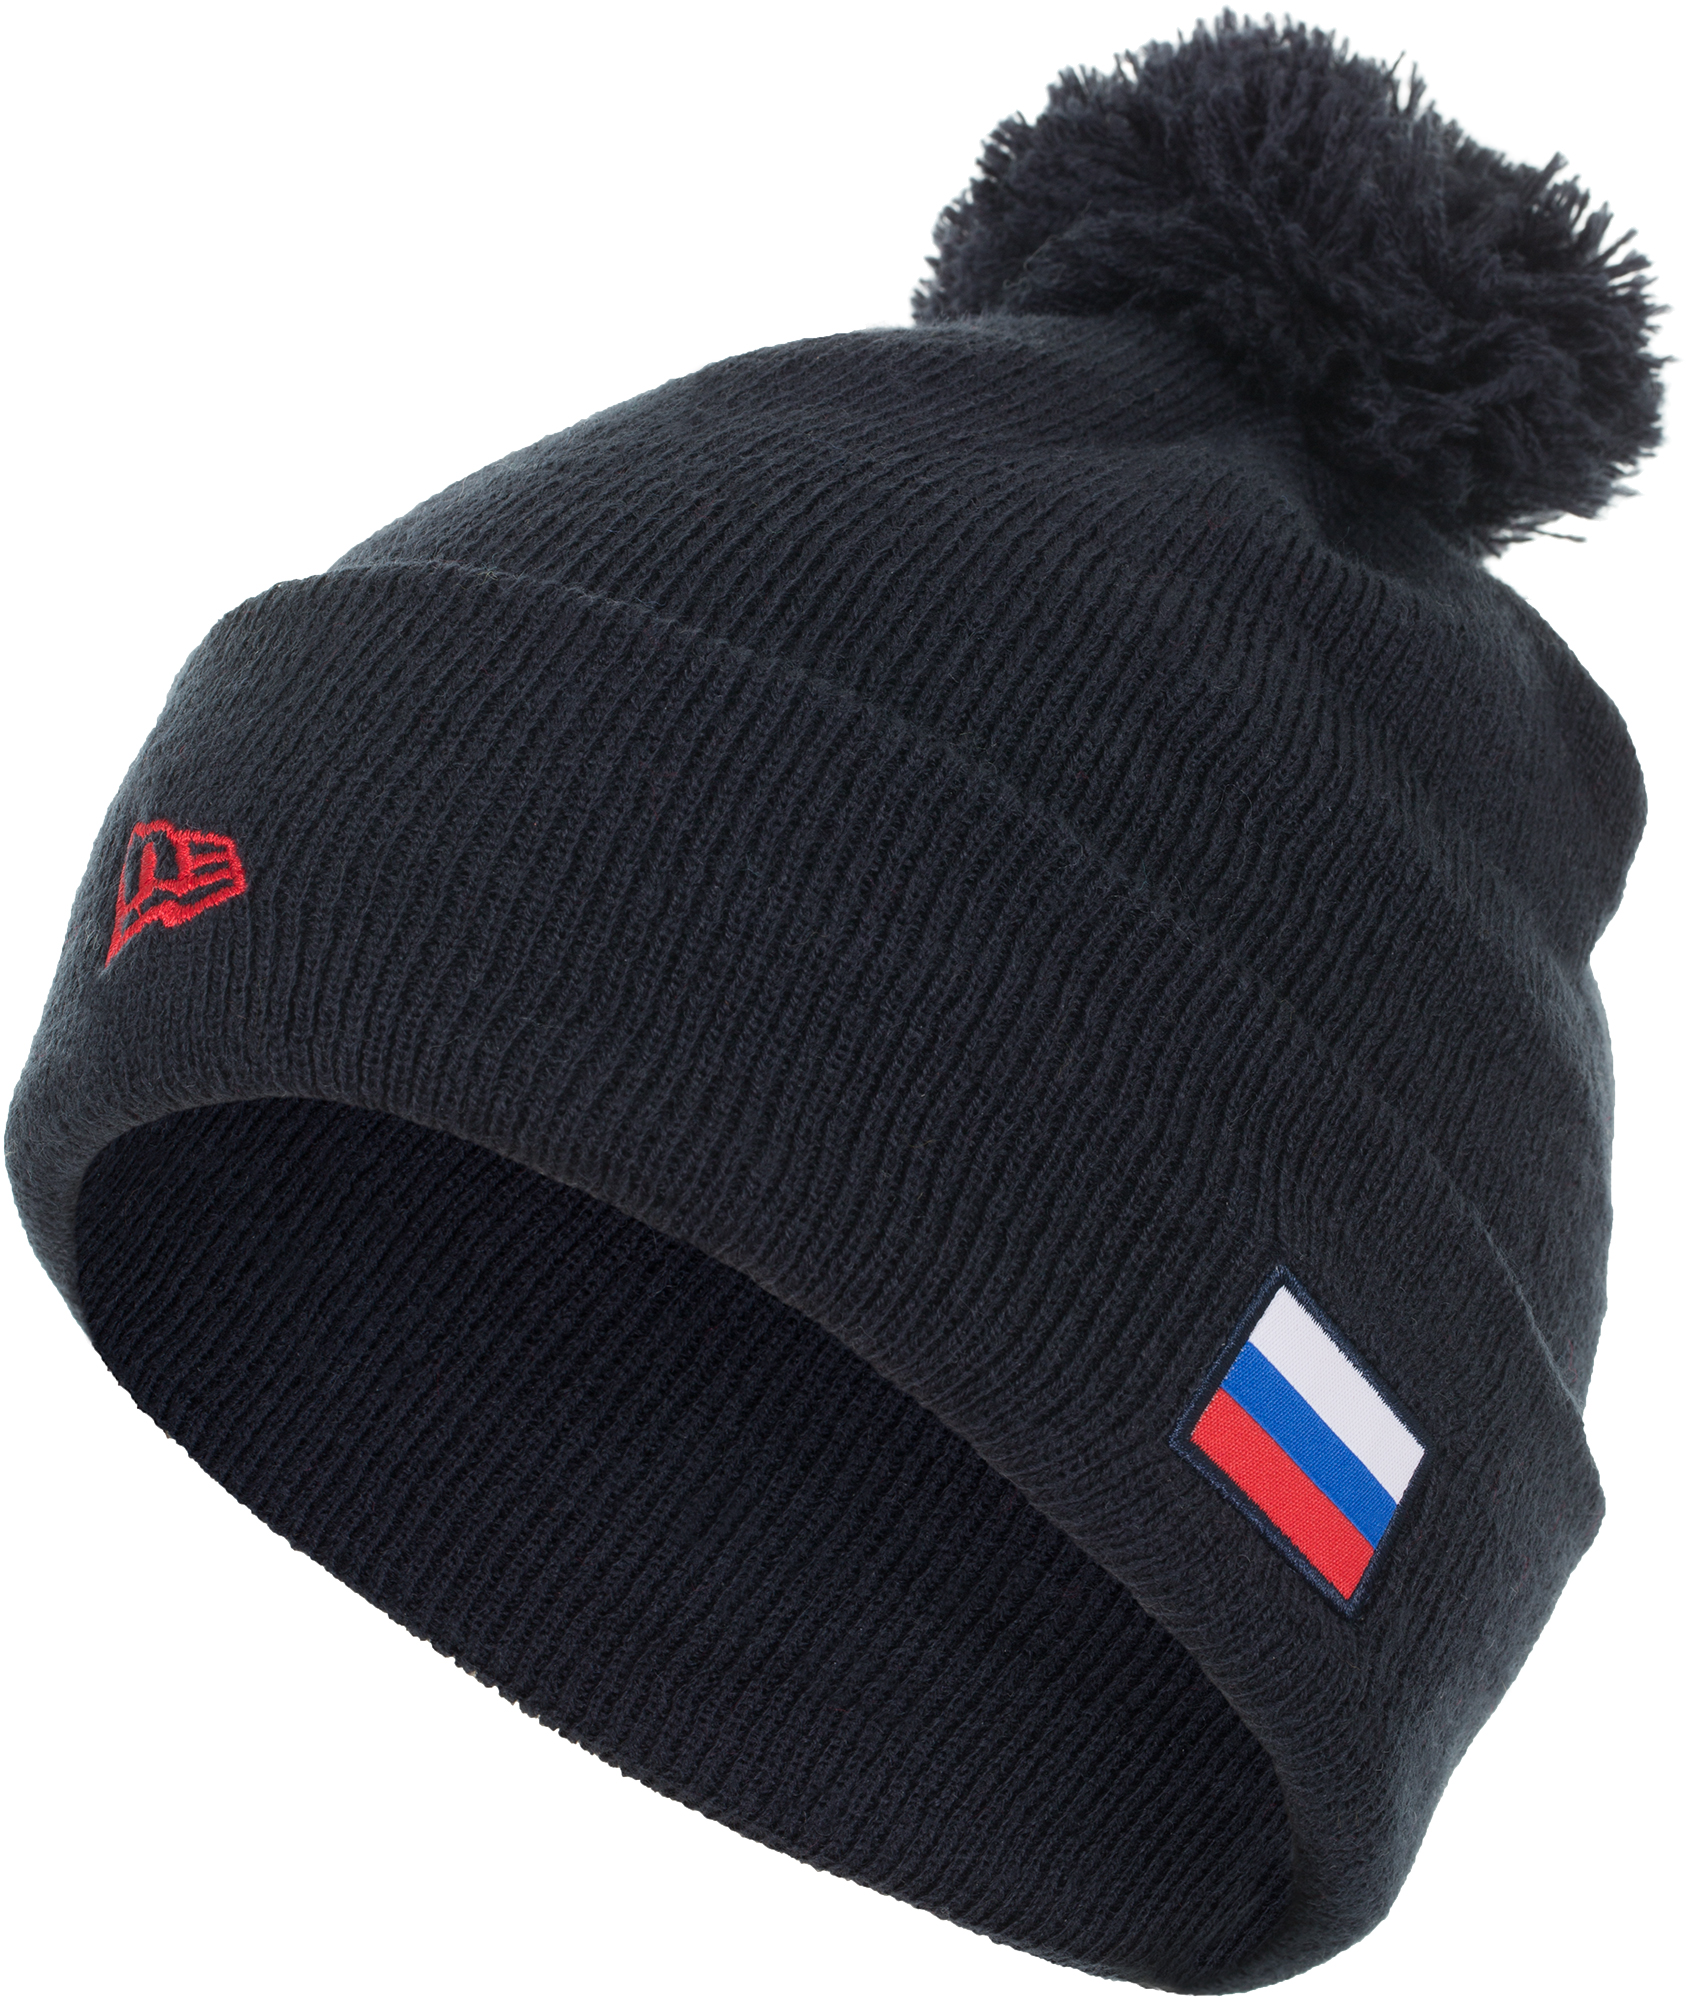 цены на New Era Шапка New Era Lic 885 Russian Star Knit